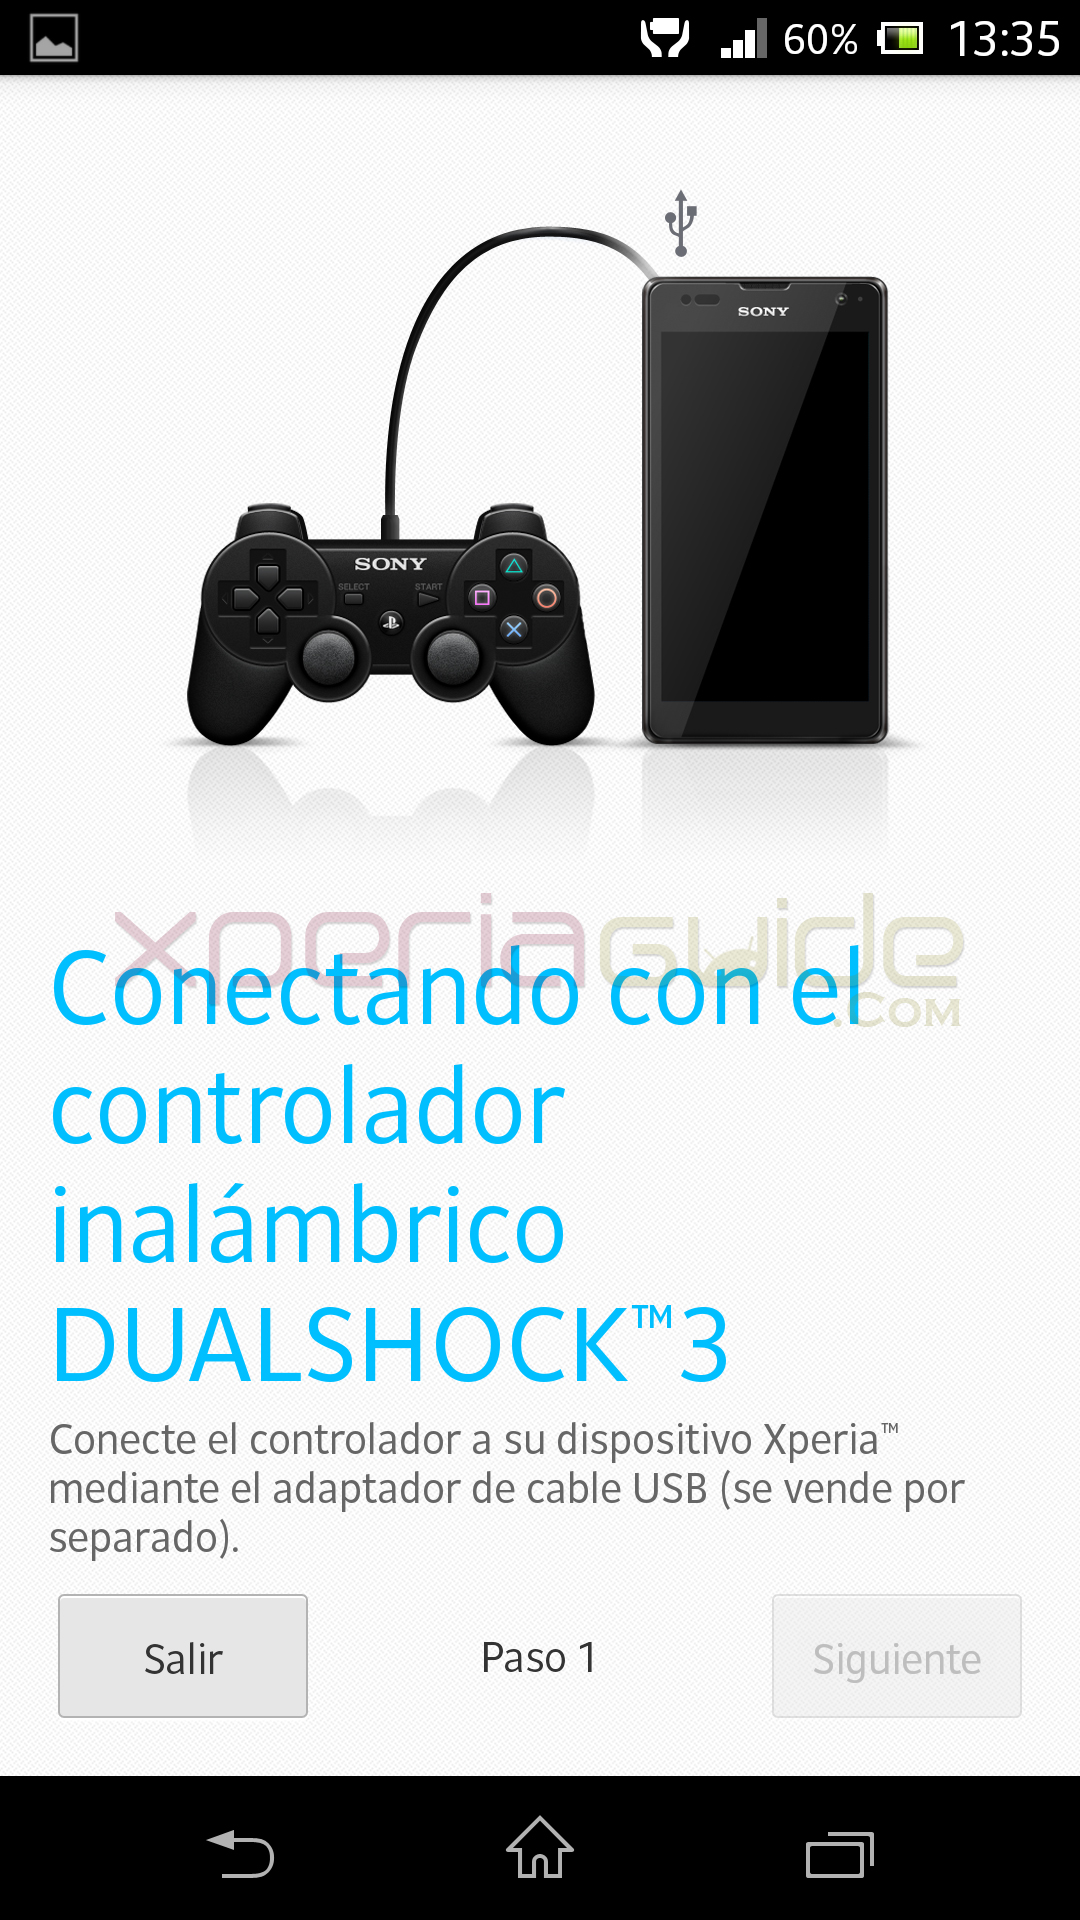 Dual Shock 3 Wireless control settings in Xperia Z C6603 Android 4.2.2 Jelly Bean 10.3.A.0.423